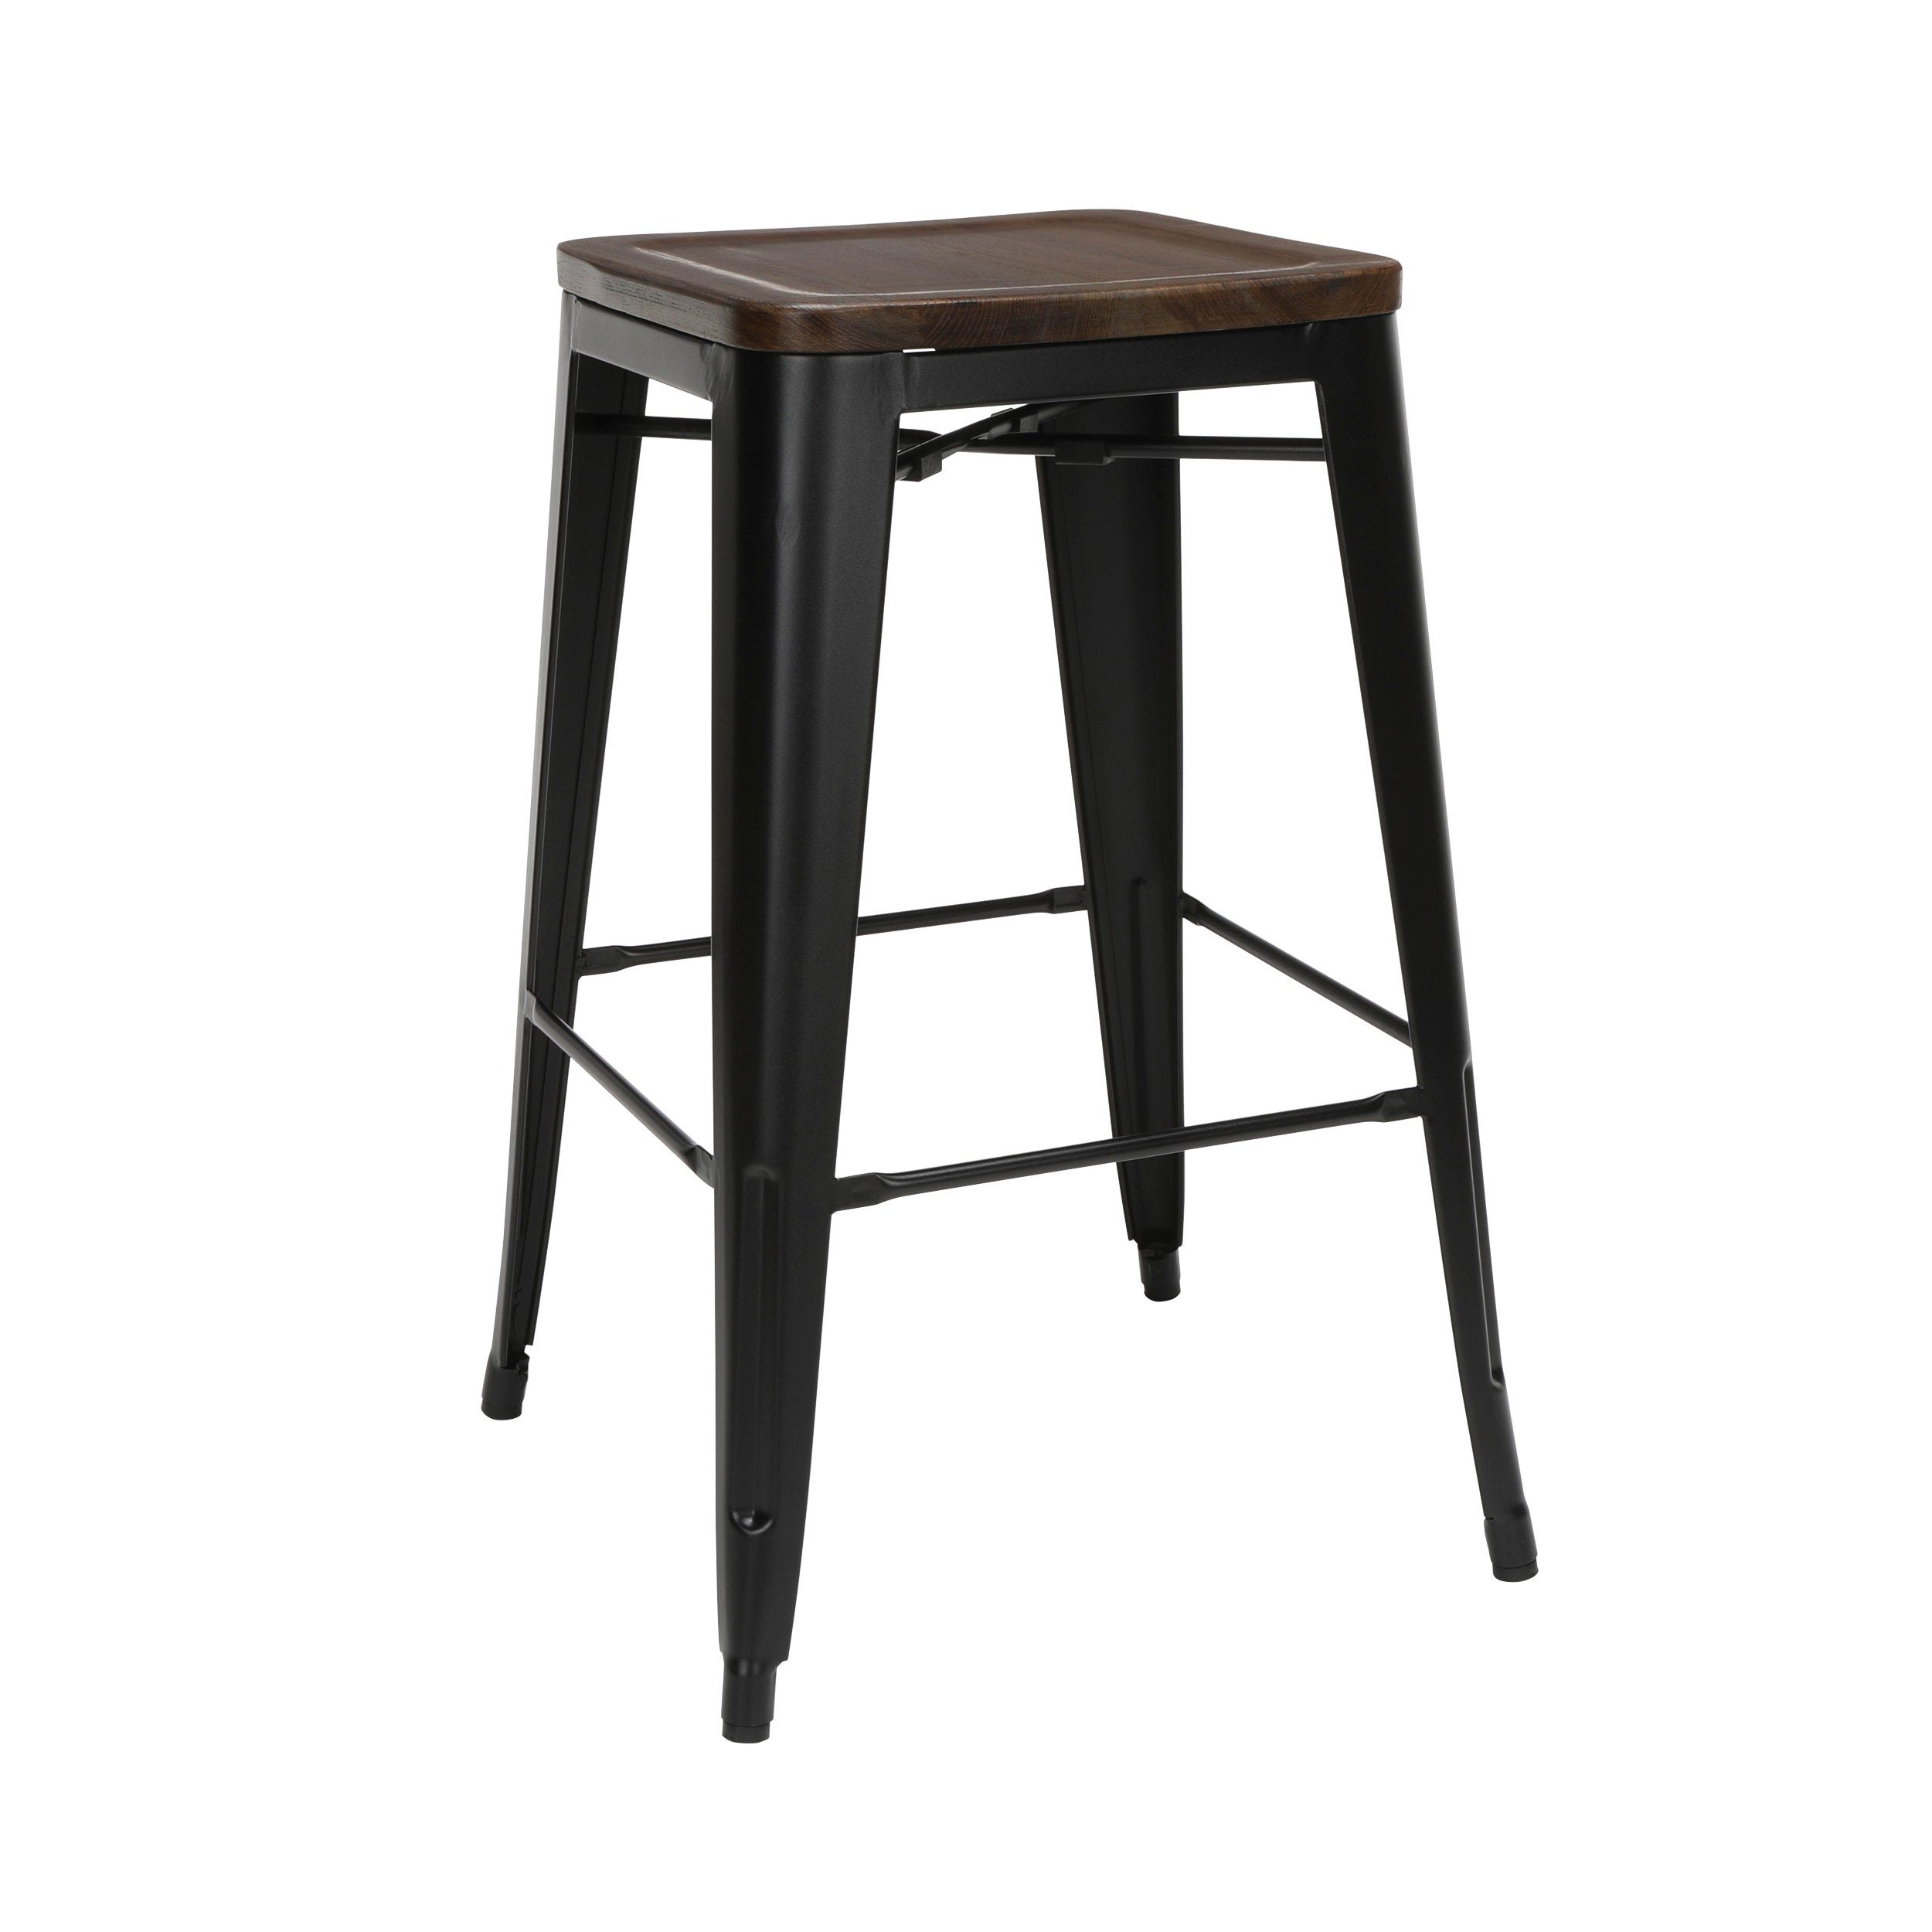 "30"" Backless Bar Height Metal Stools Wood Seats Galvanized Steel Stool"